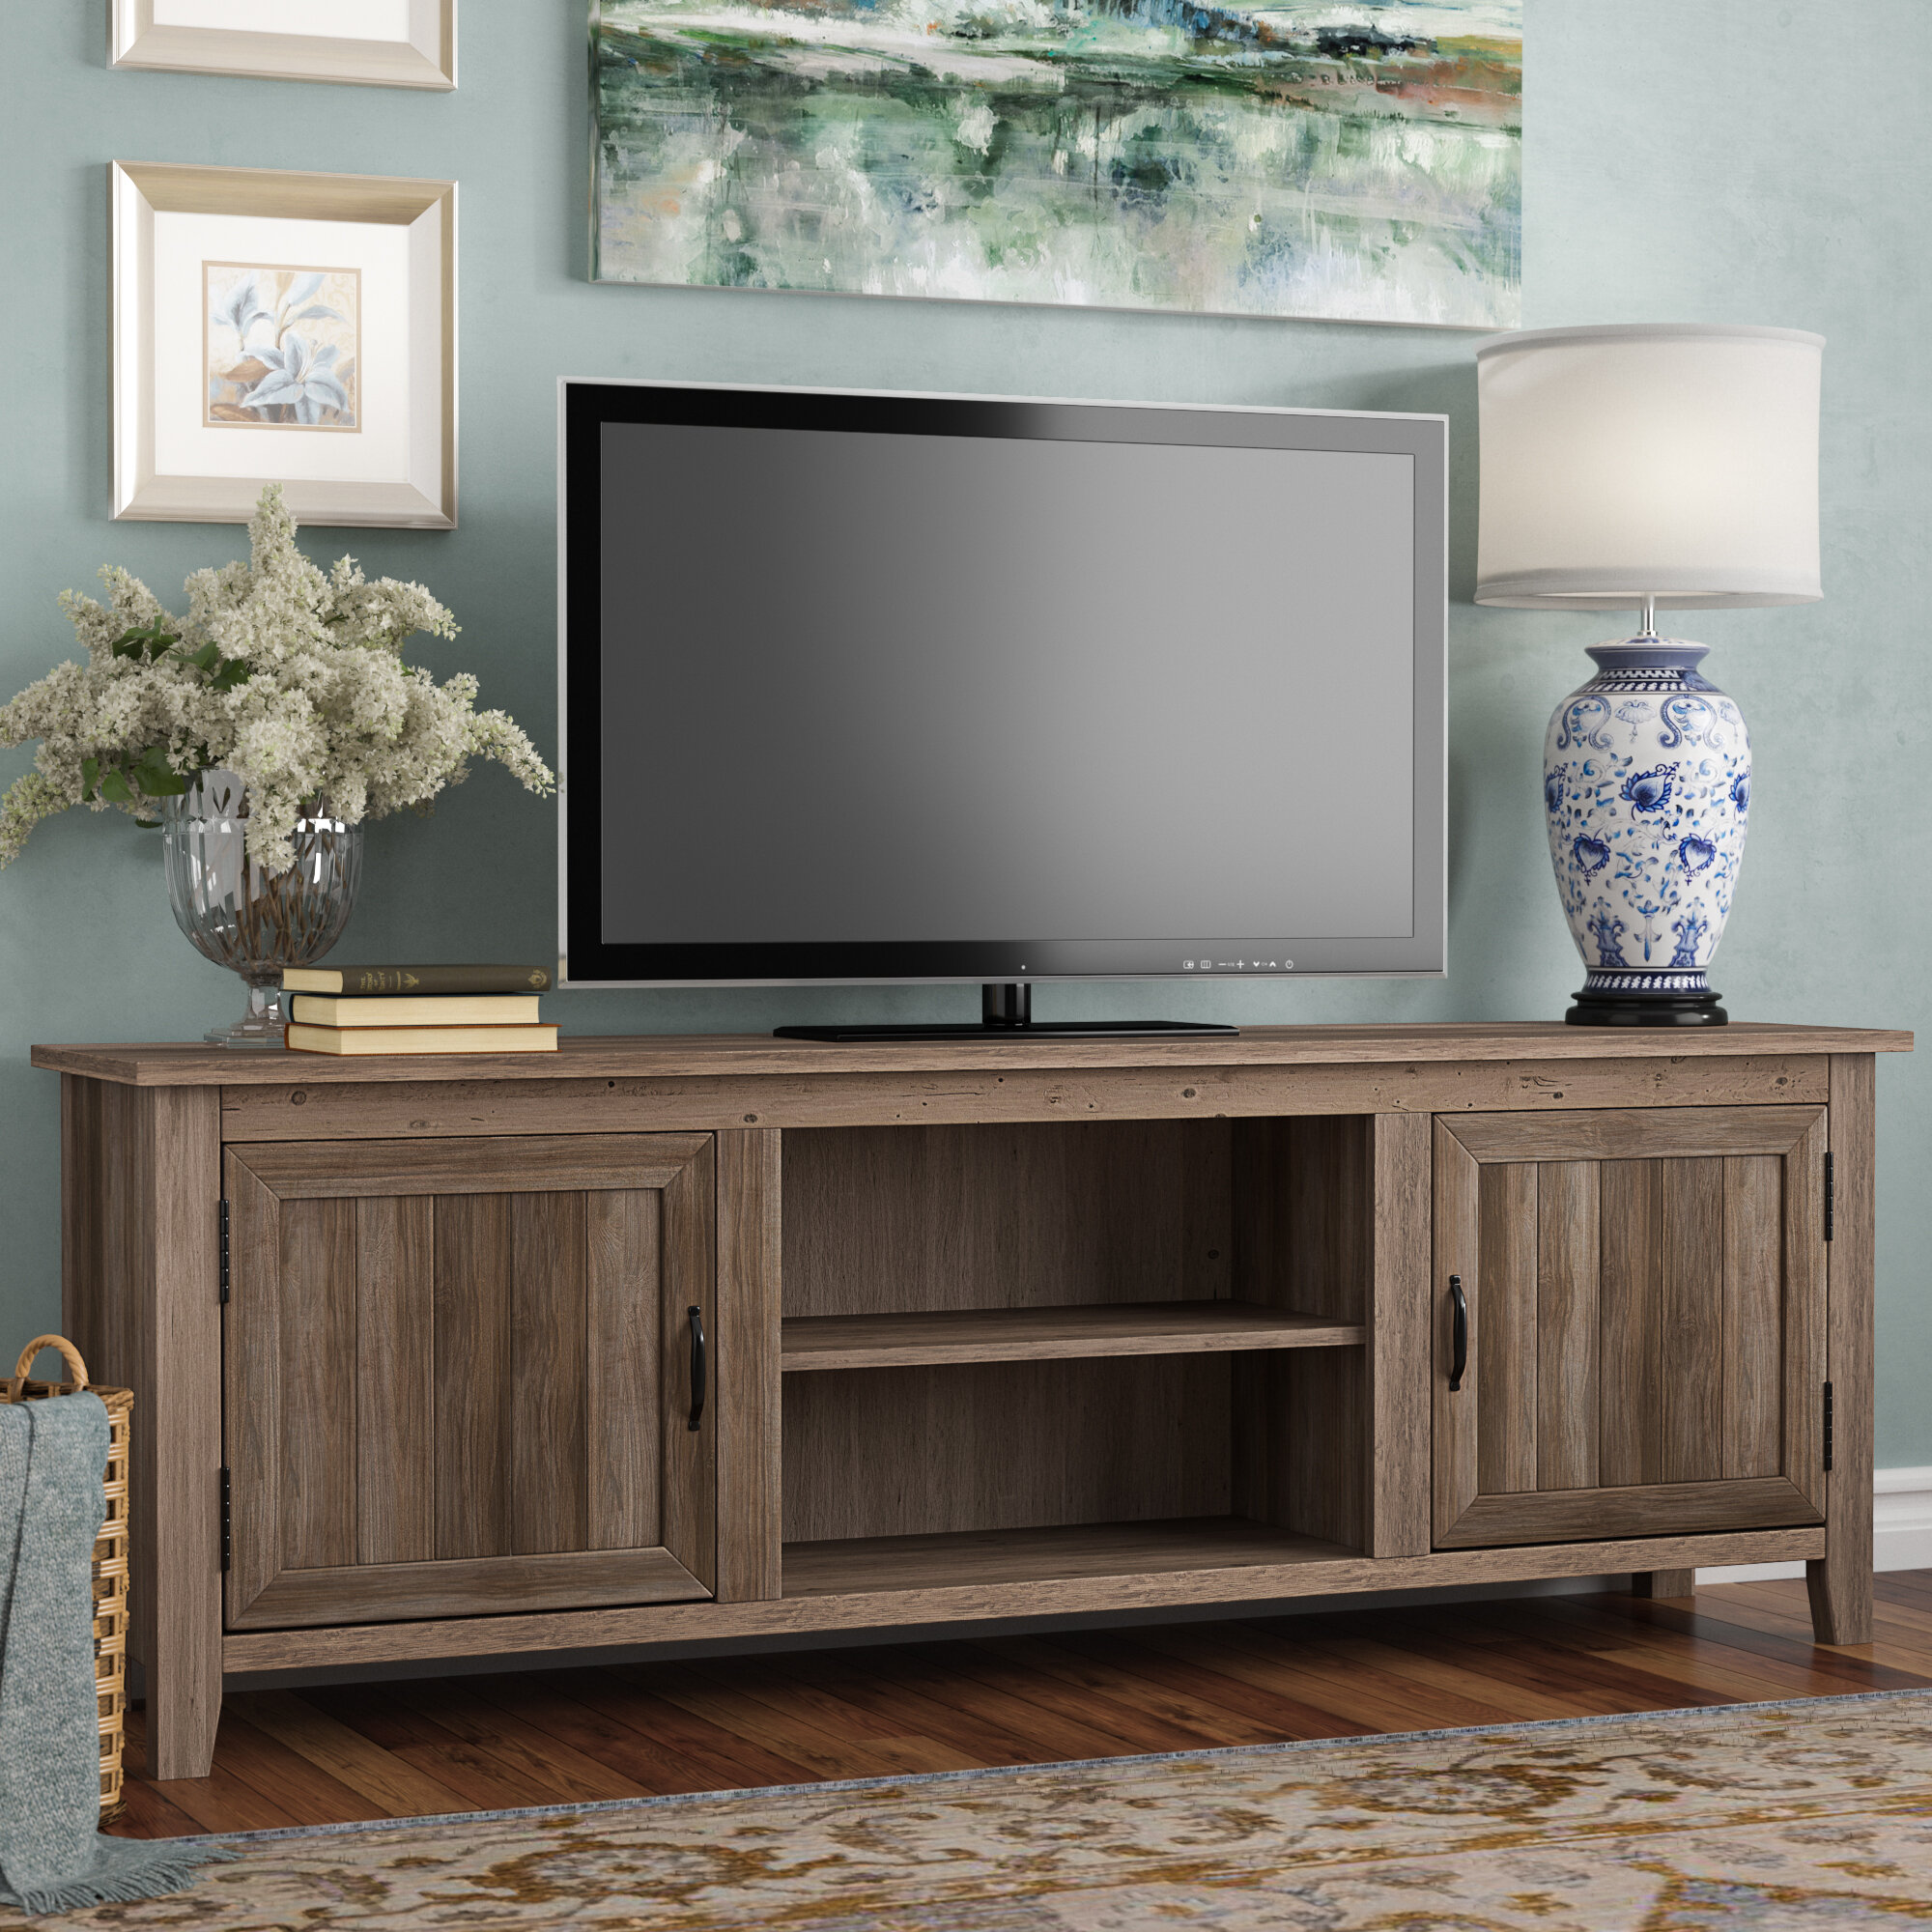 Gracie Oaks Shreffler Tv Stand For Tvs Up To 78 Reviews Wayfair